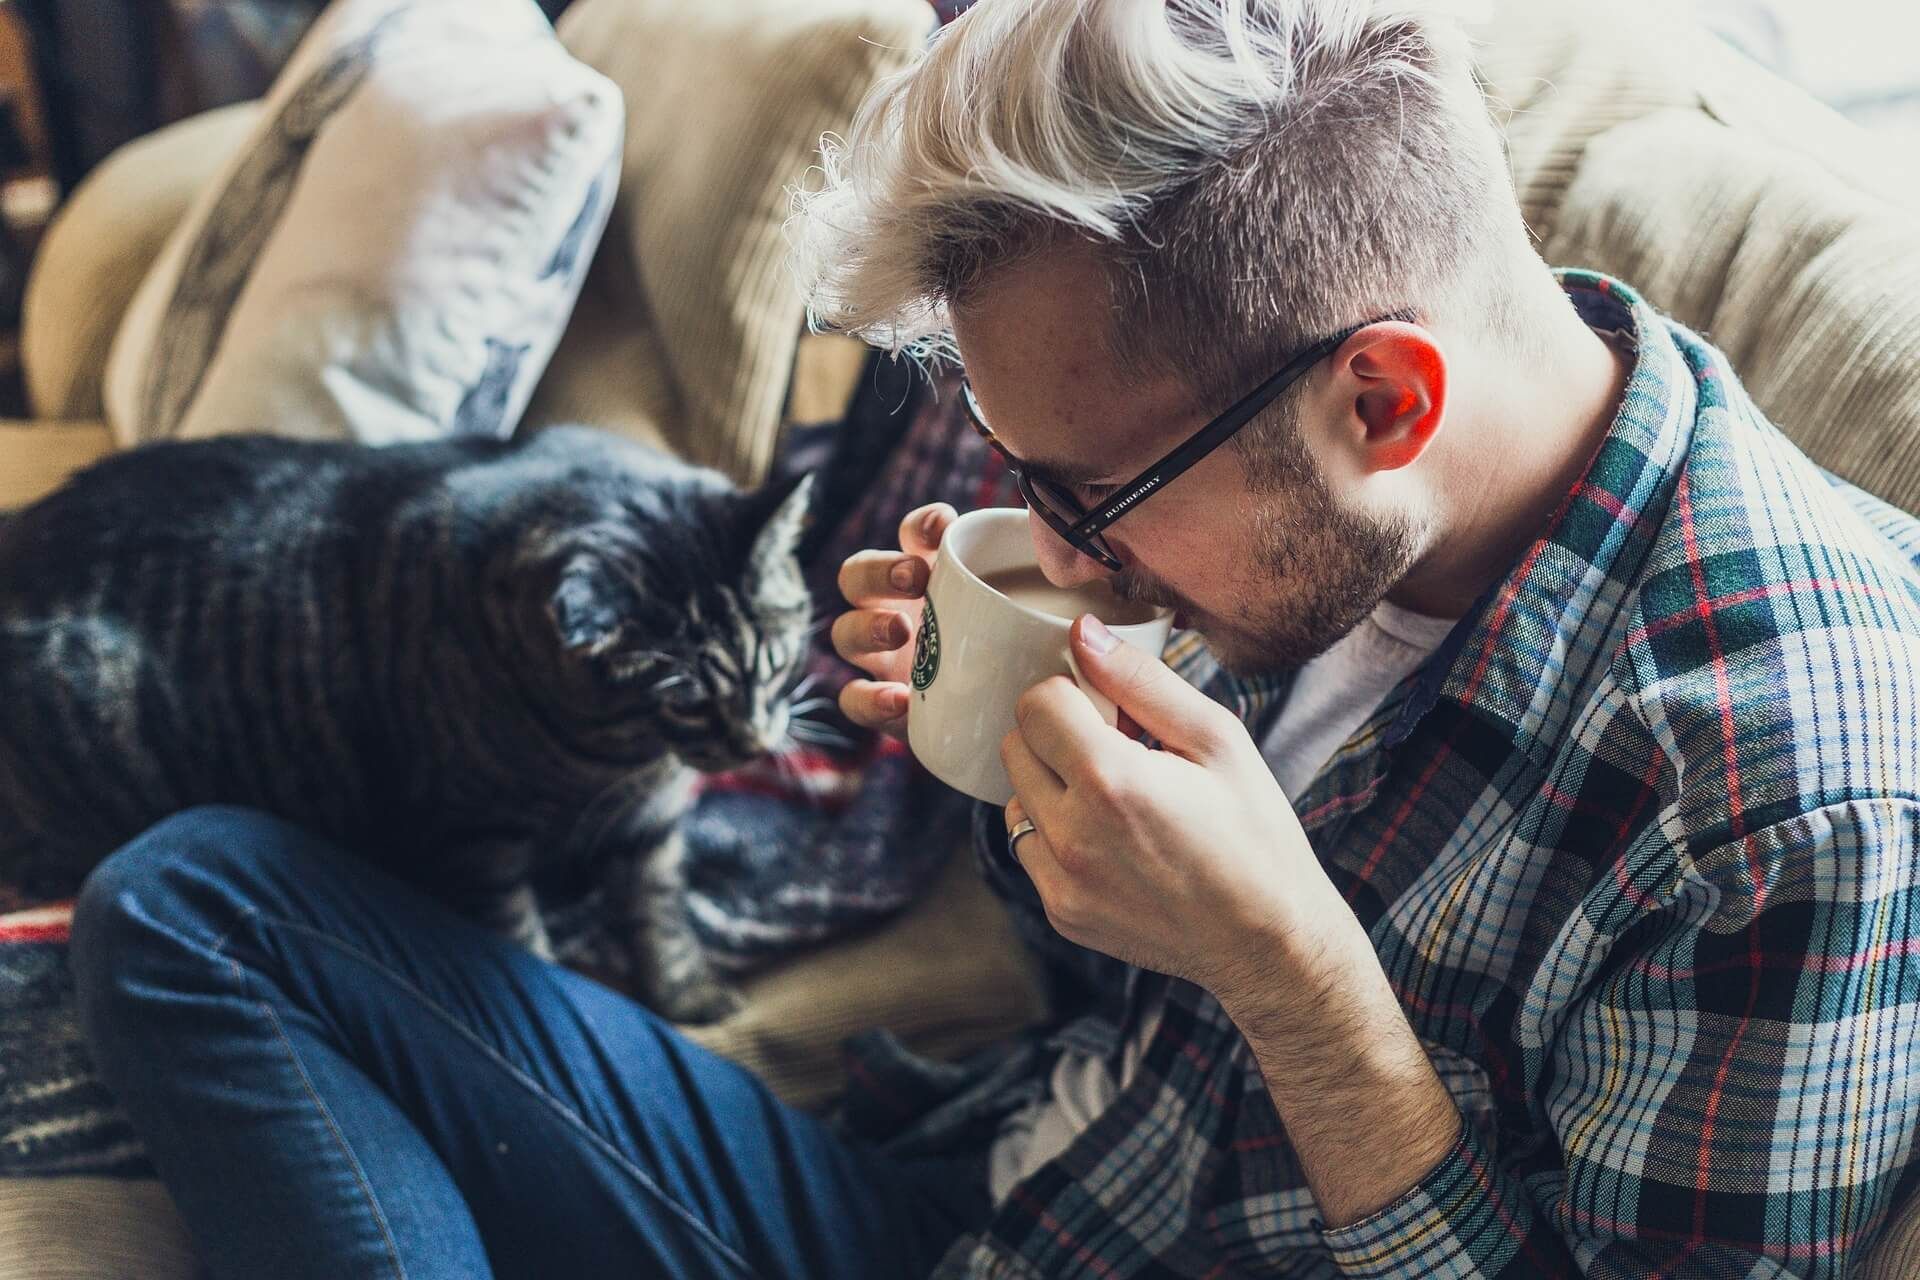 Whether or not you are renting to pet owners, make sure you have a fully formed pet policy.